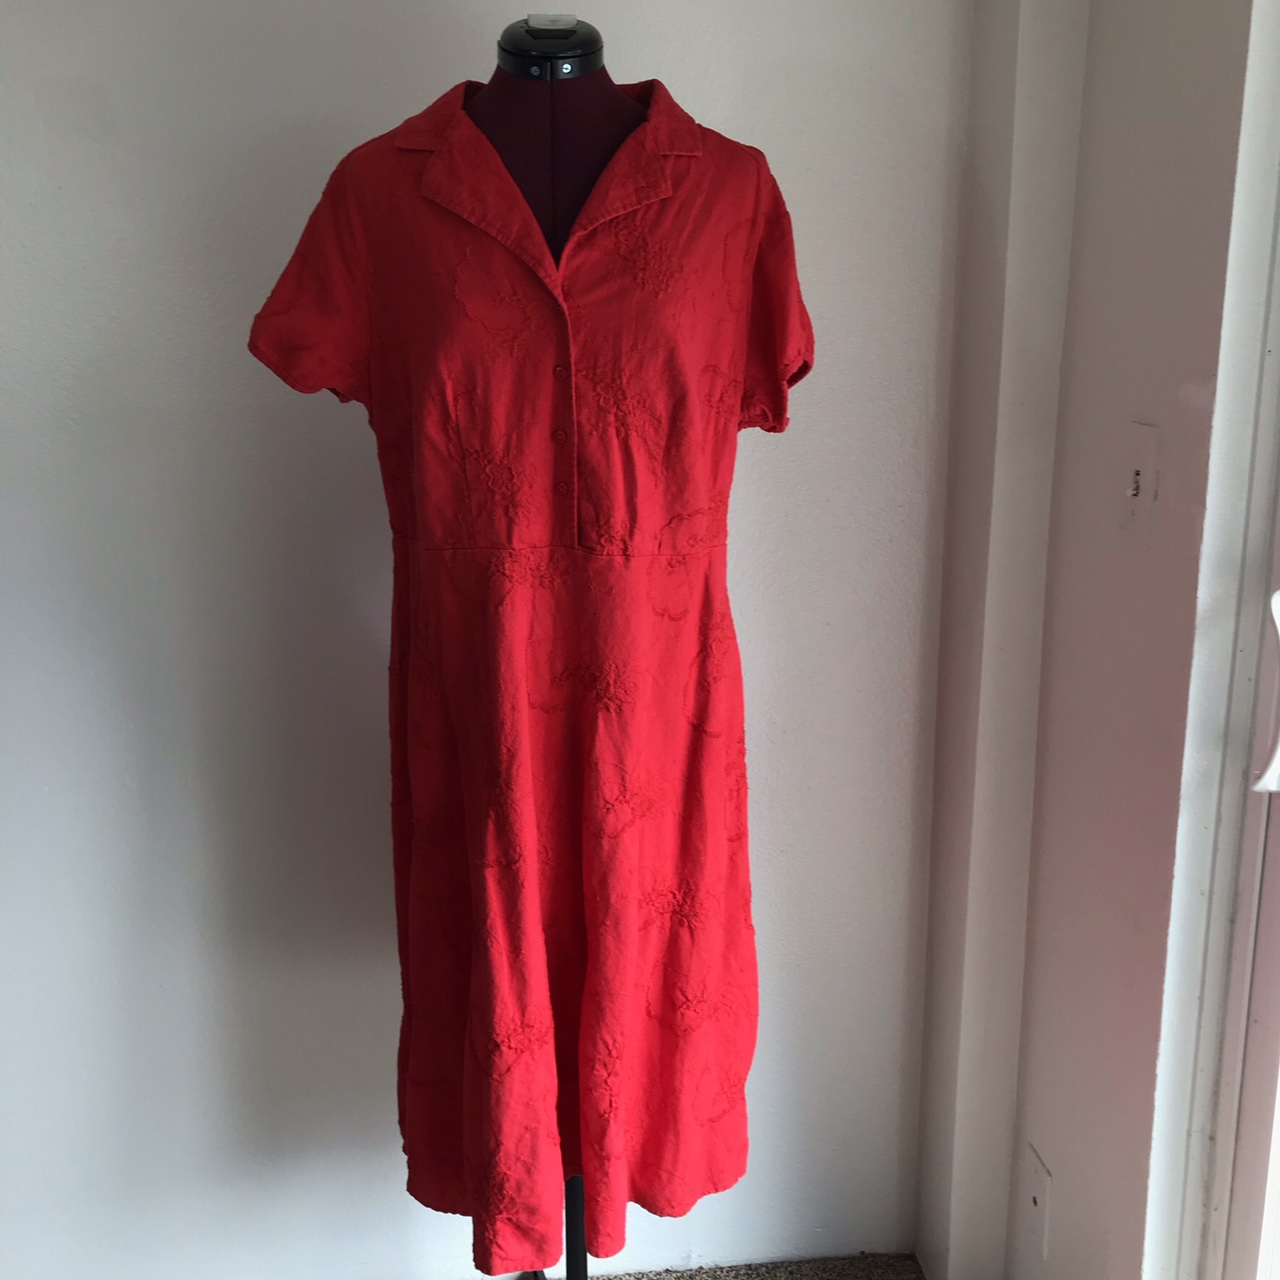 Product Image 1 - Y2k bright red embroidered linen